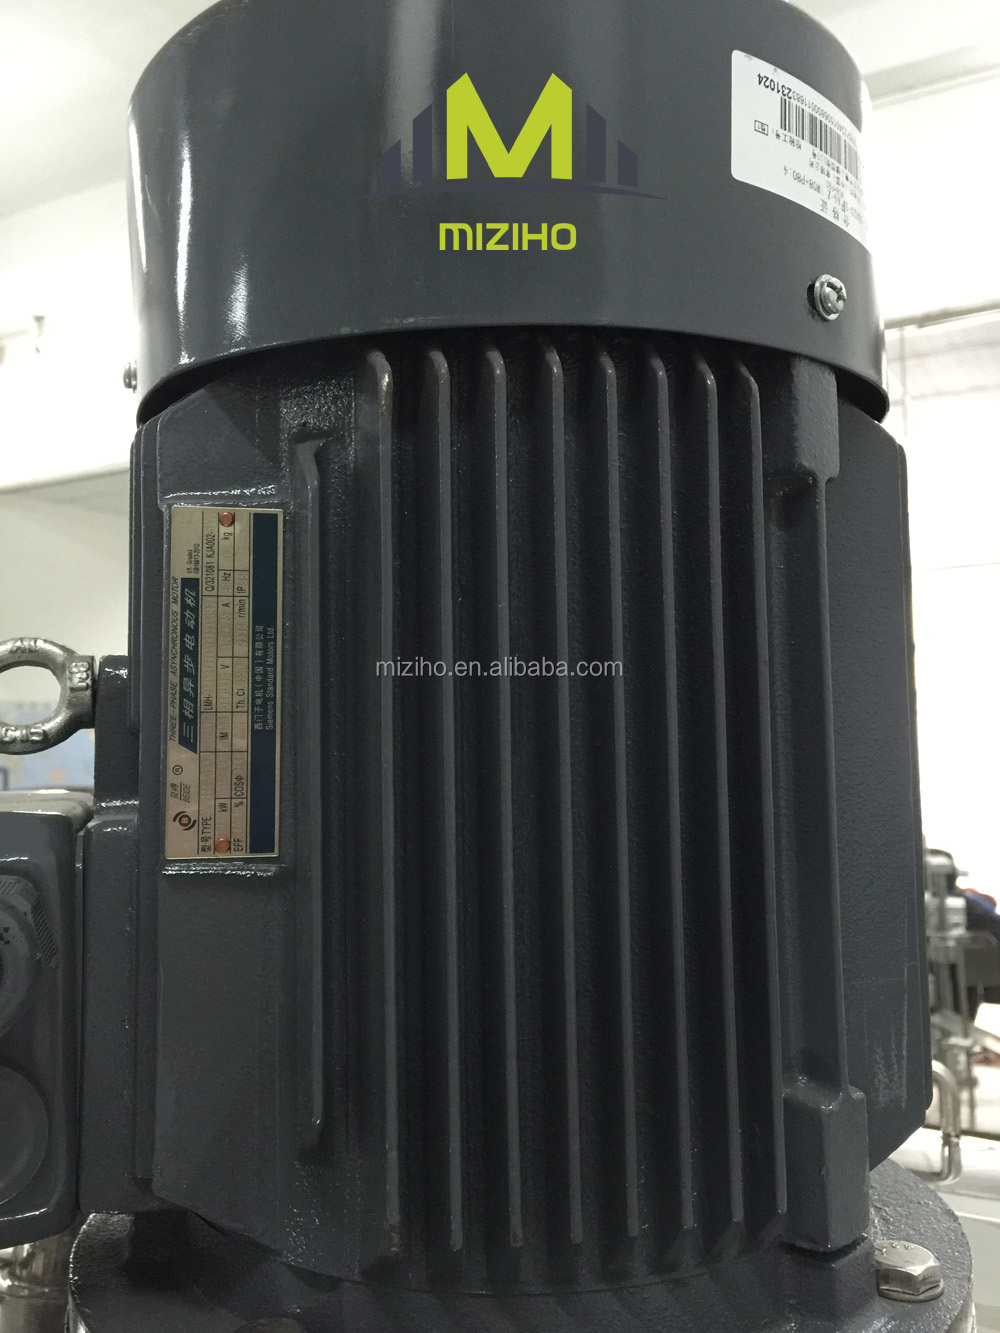 MZH-M 100L cosmetic stainless steel mixing tank for heating material